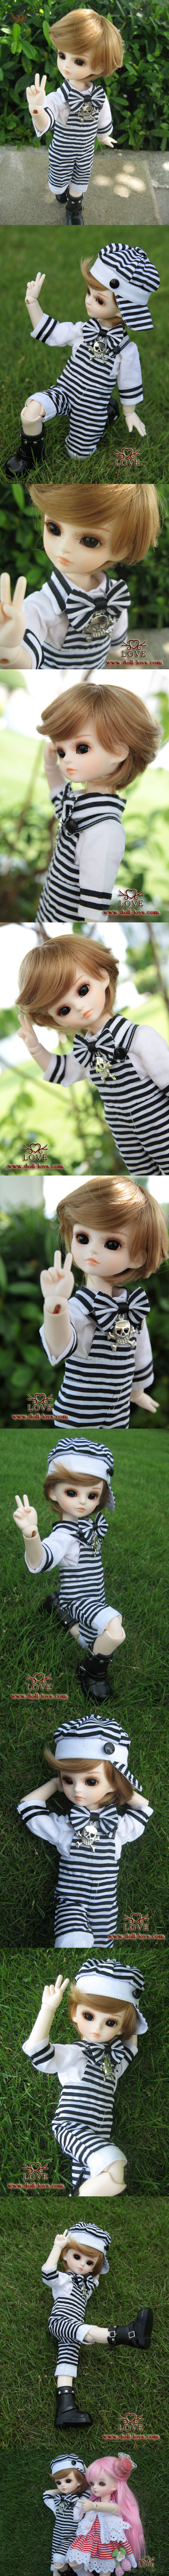 BJD Zoey 27cm Boy Ball-jointed doll